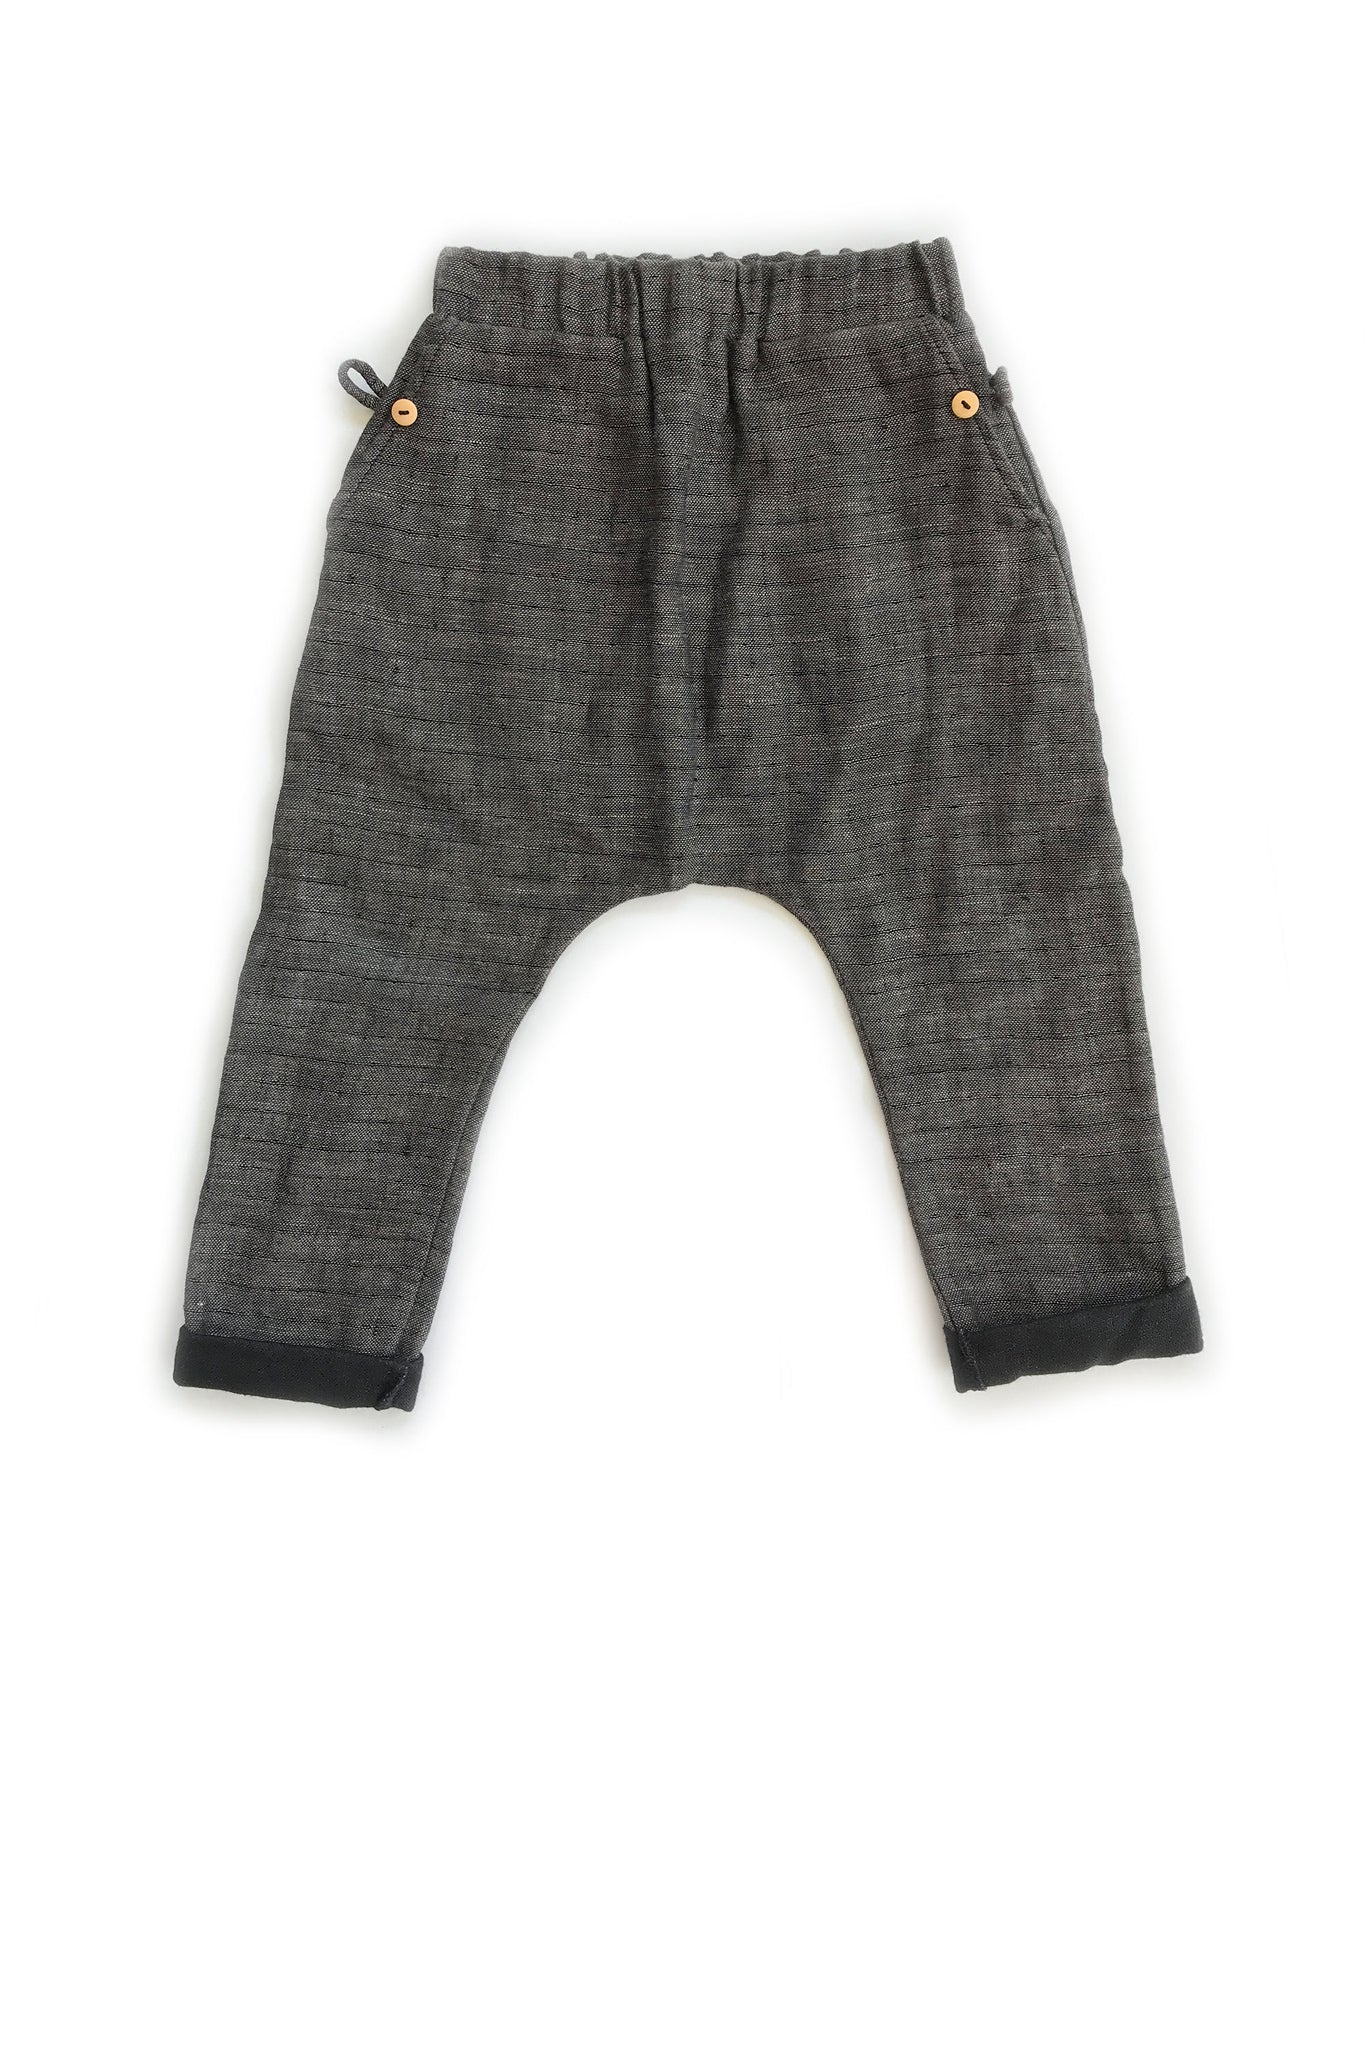 Easy Beach Pants in Black